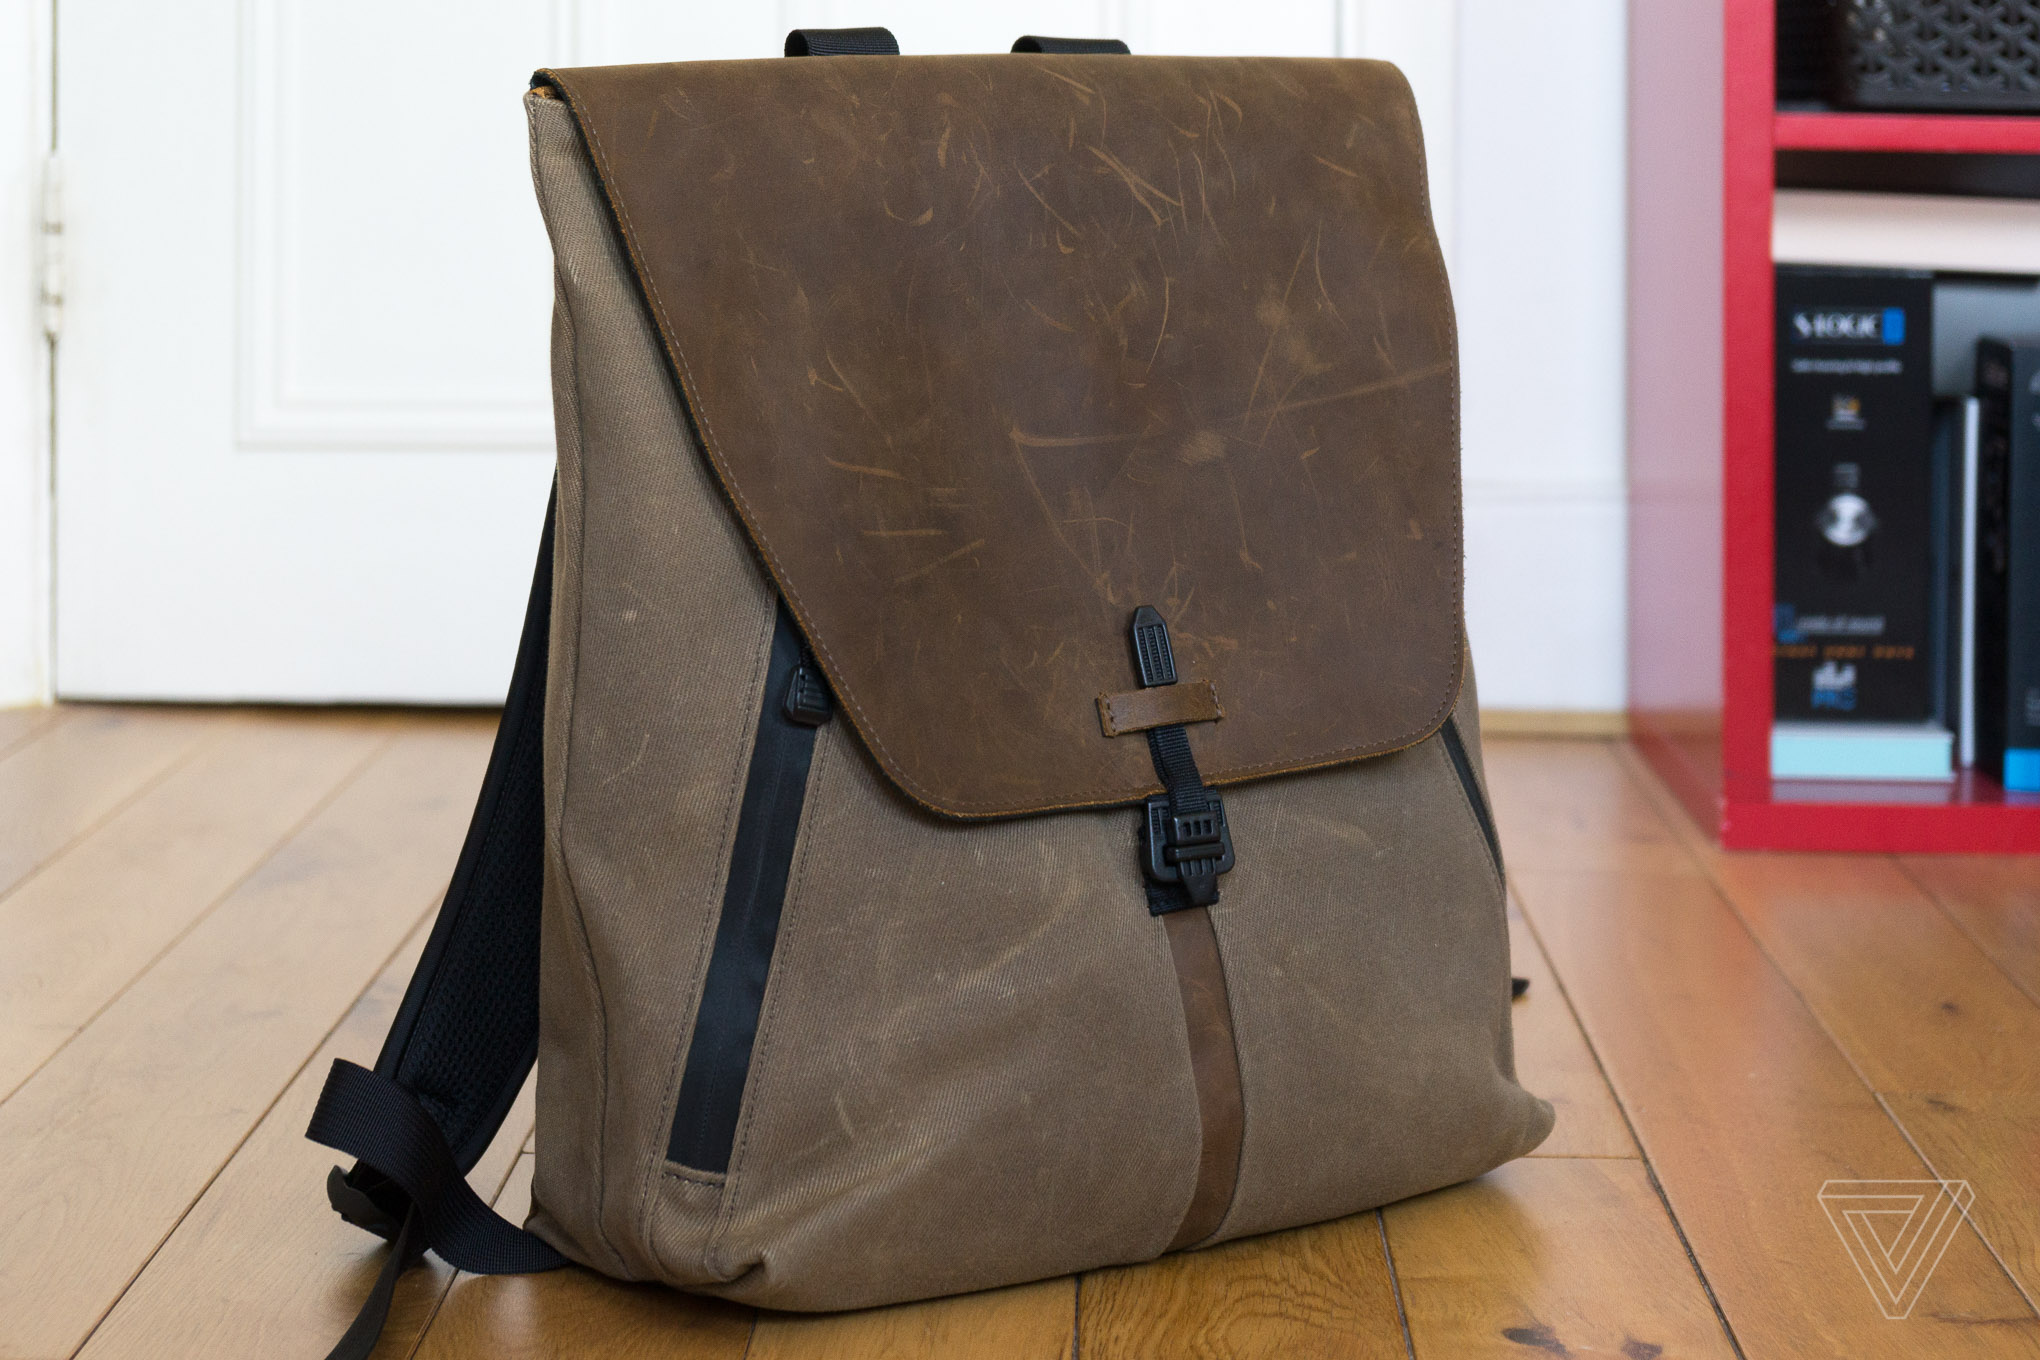 f35be2146a0c Bag Reviews - The Verge